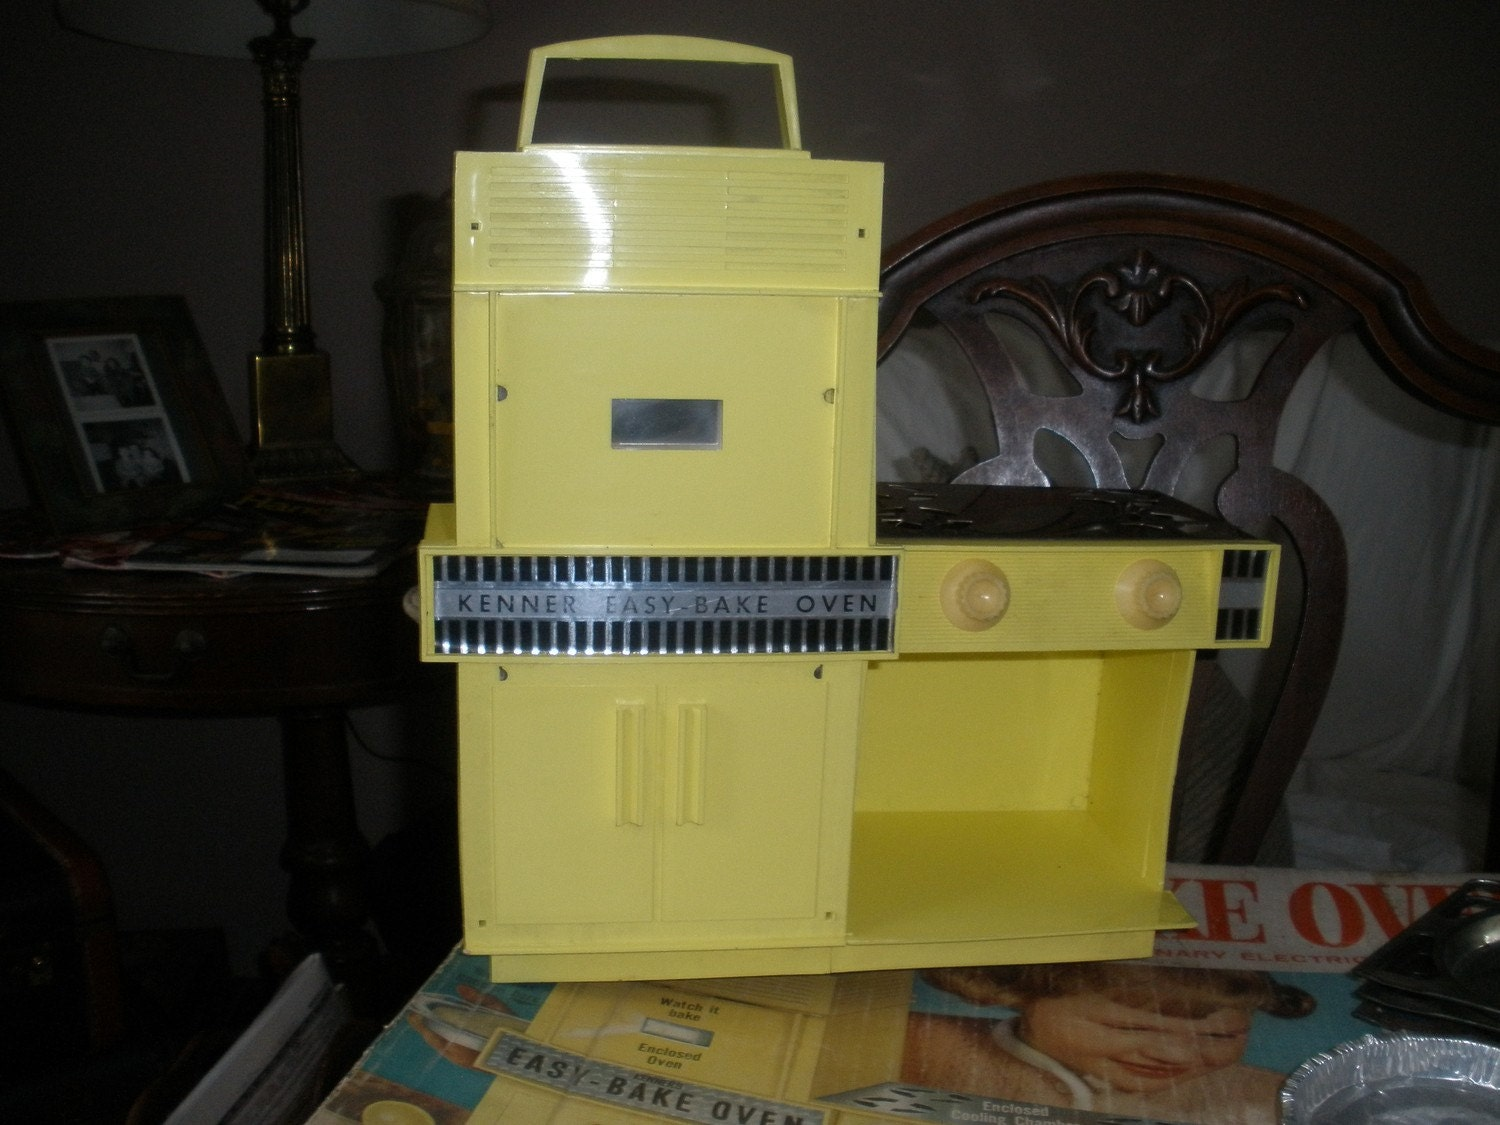 Easy Bake Oven By Kenner 1964 Classic Yellow And By